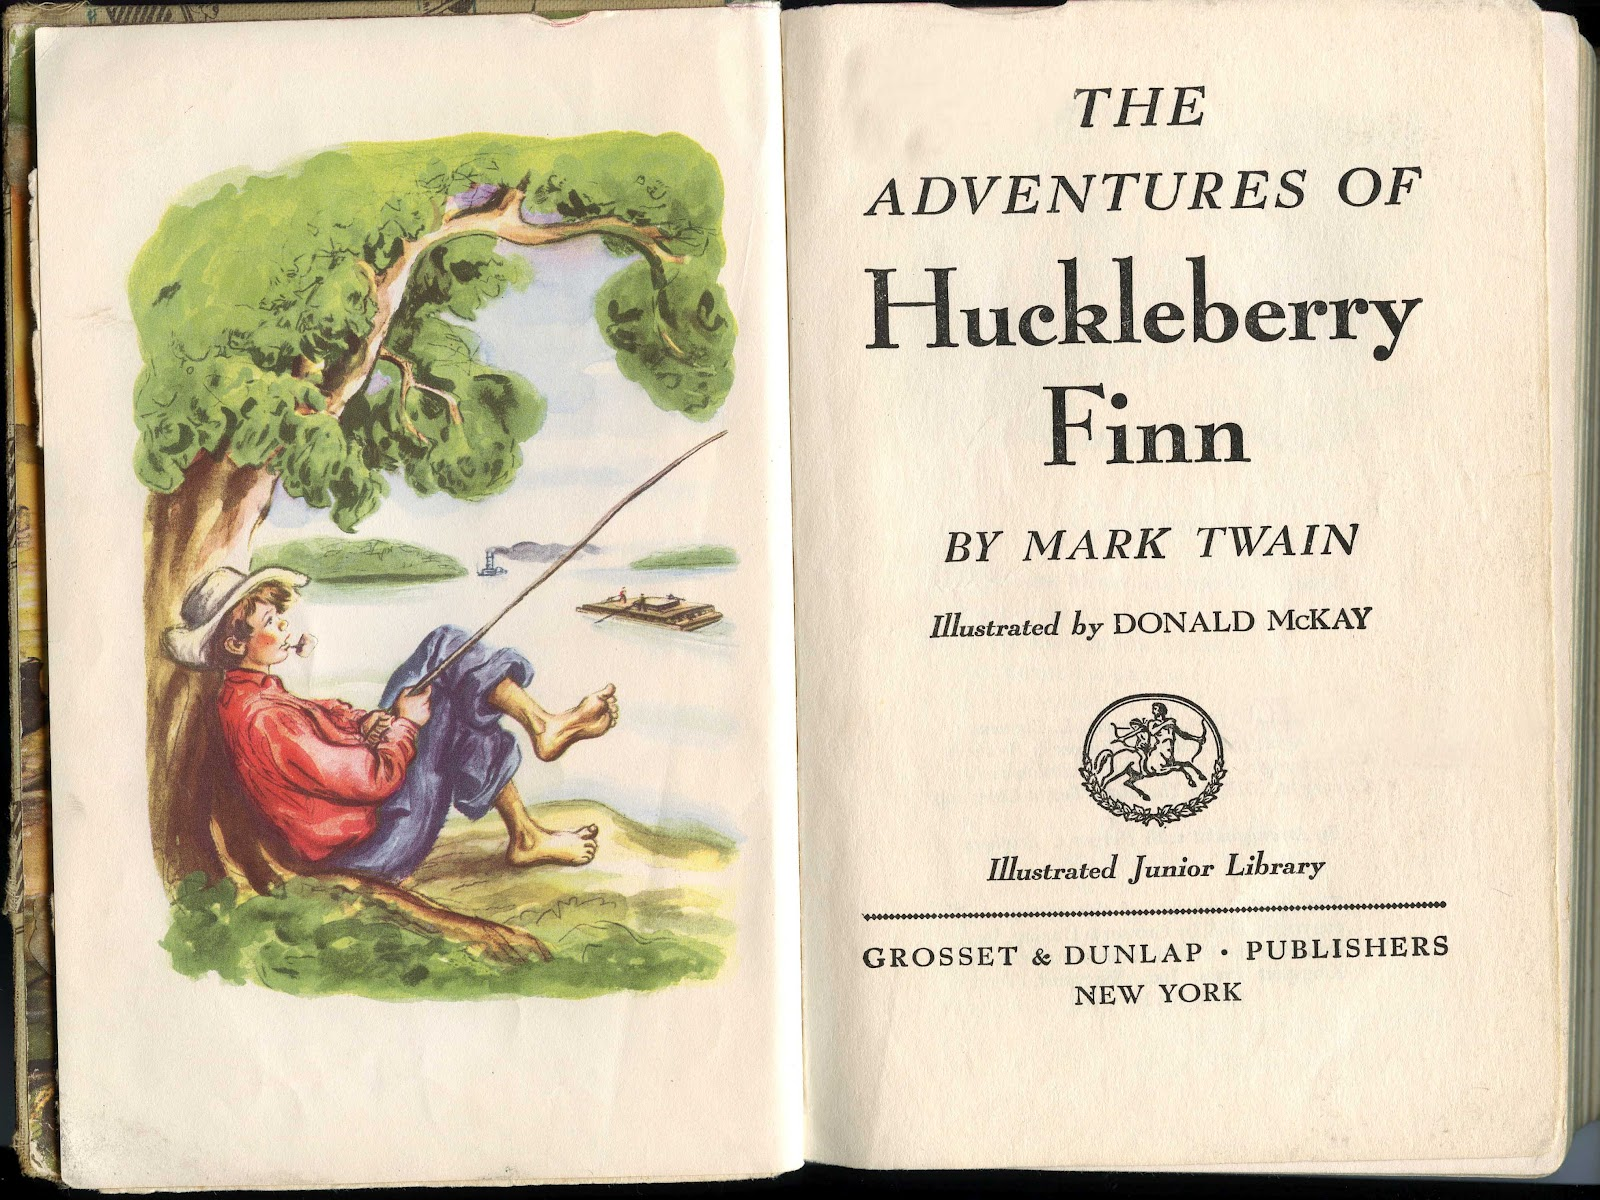 To Kill a Mockingbird and Huckleberry Finn banned from schools in Virginia for racism